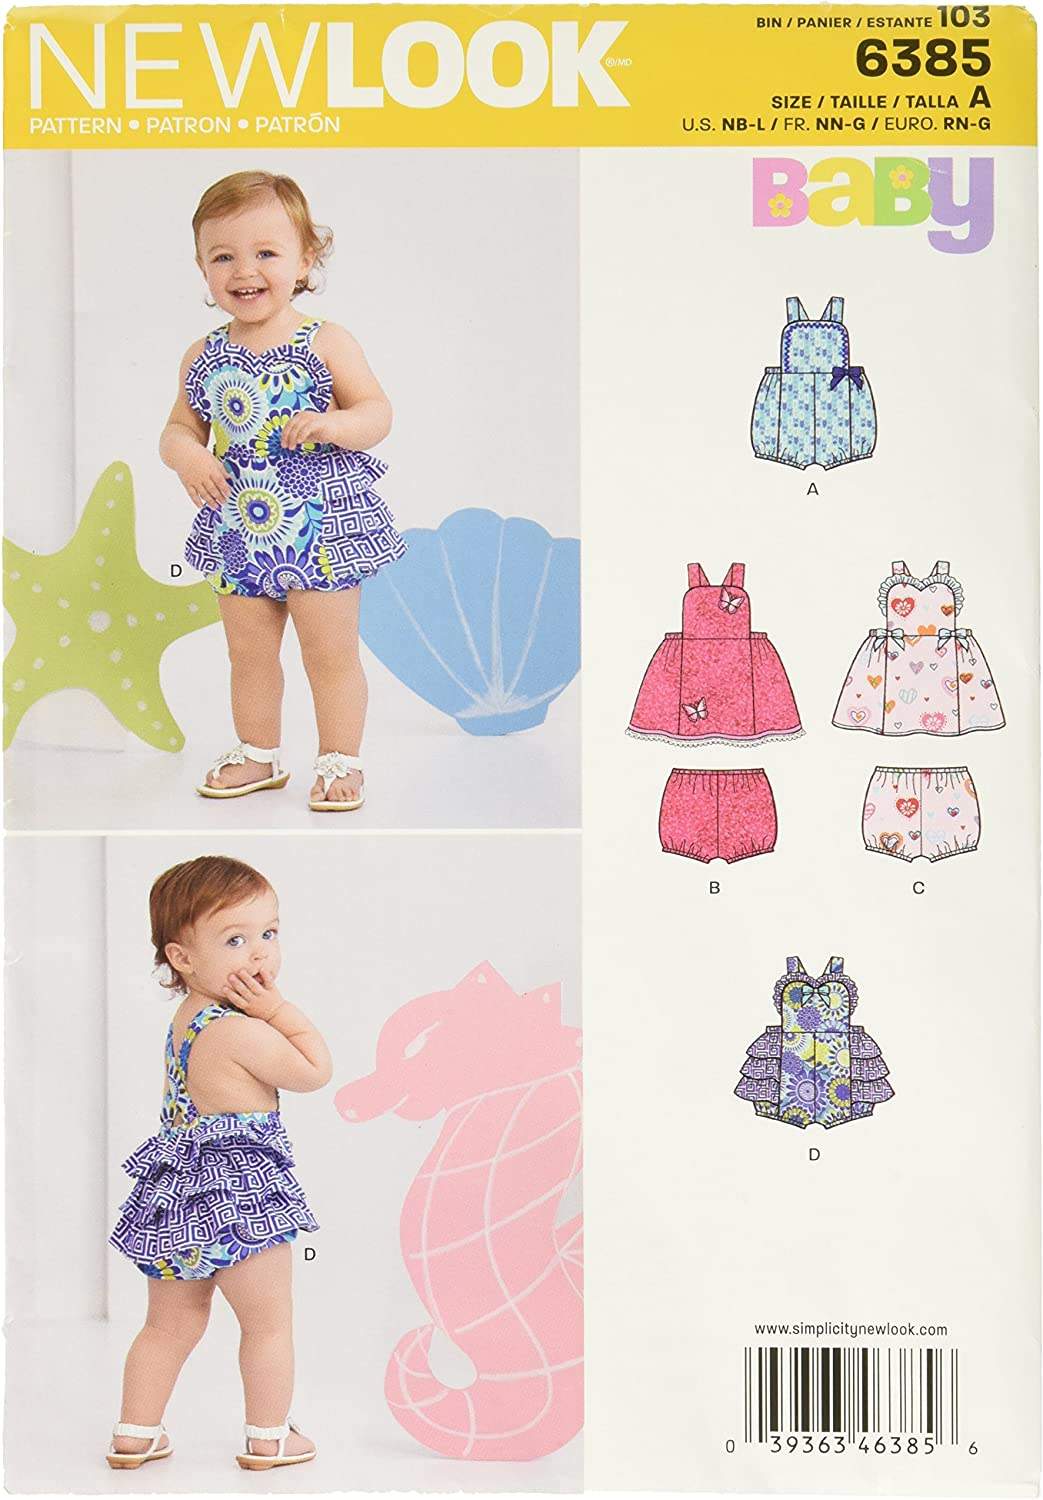 New Look Sewing Pattern 6293: Babies Romper Dress NN G Panties and Headband Size A